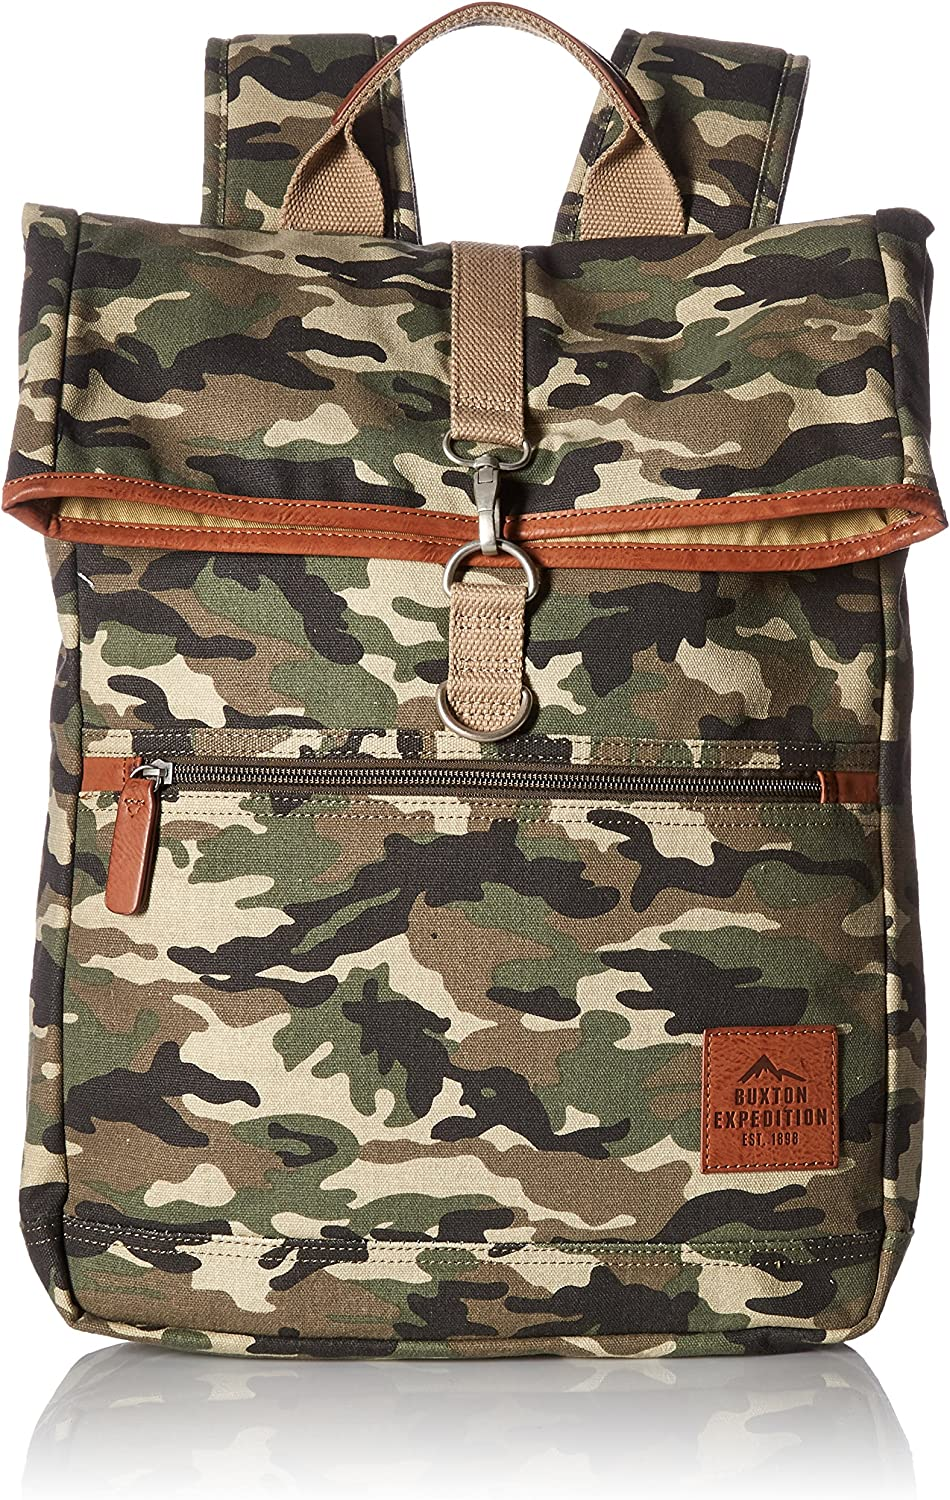 Buxton Men's Expedition Ii Huntington Gear Fold-Over Canvas Backpack, Camo, One Size